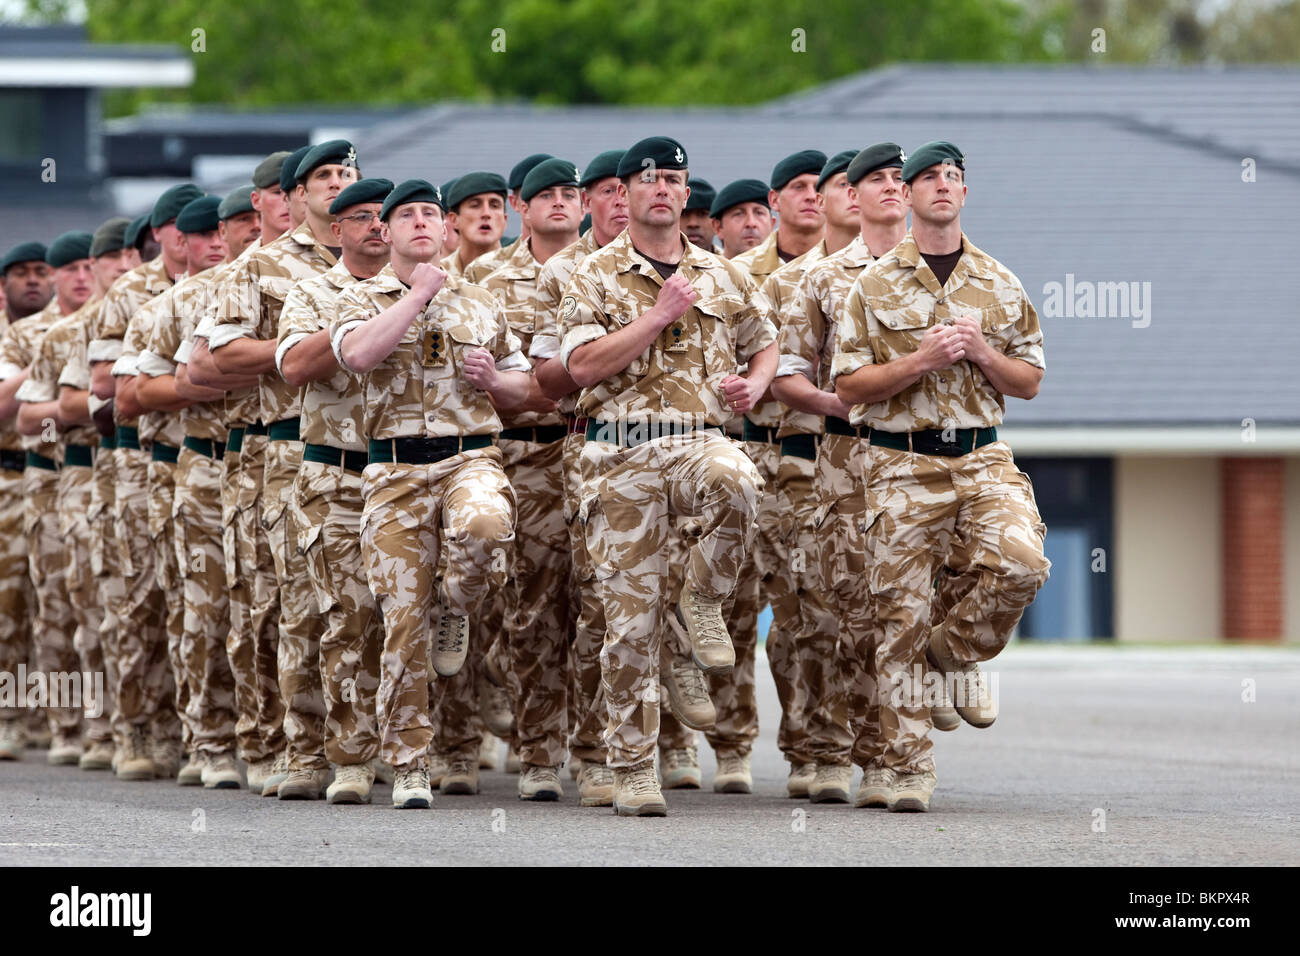 The British Armies 4th Battalion The Rifles on parade at Bulford Camp's Kiwi Barracks parade ground in desert - Stock Image